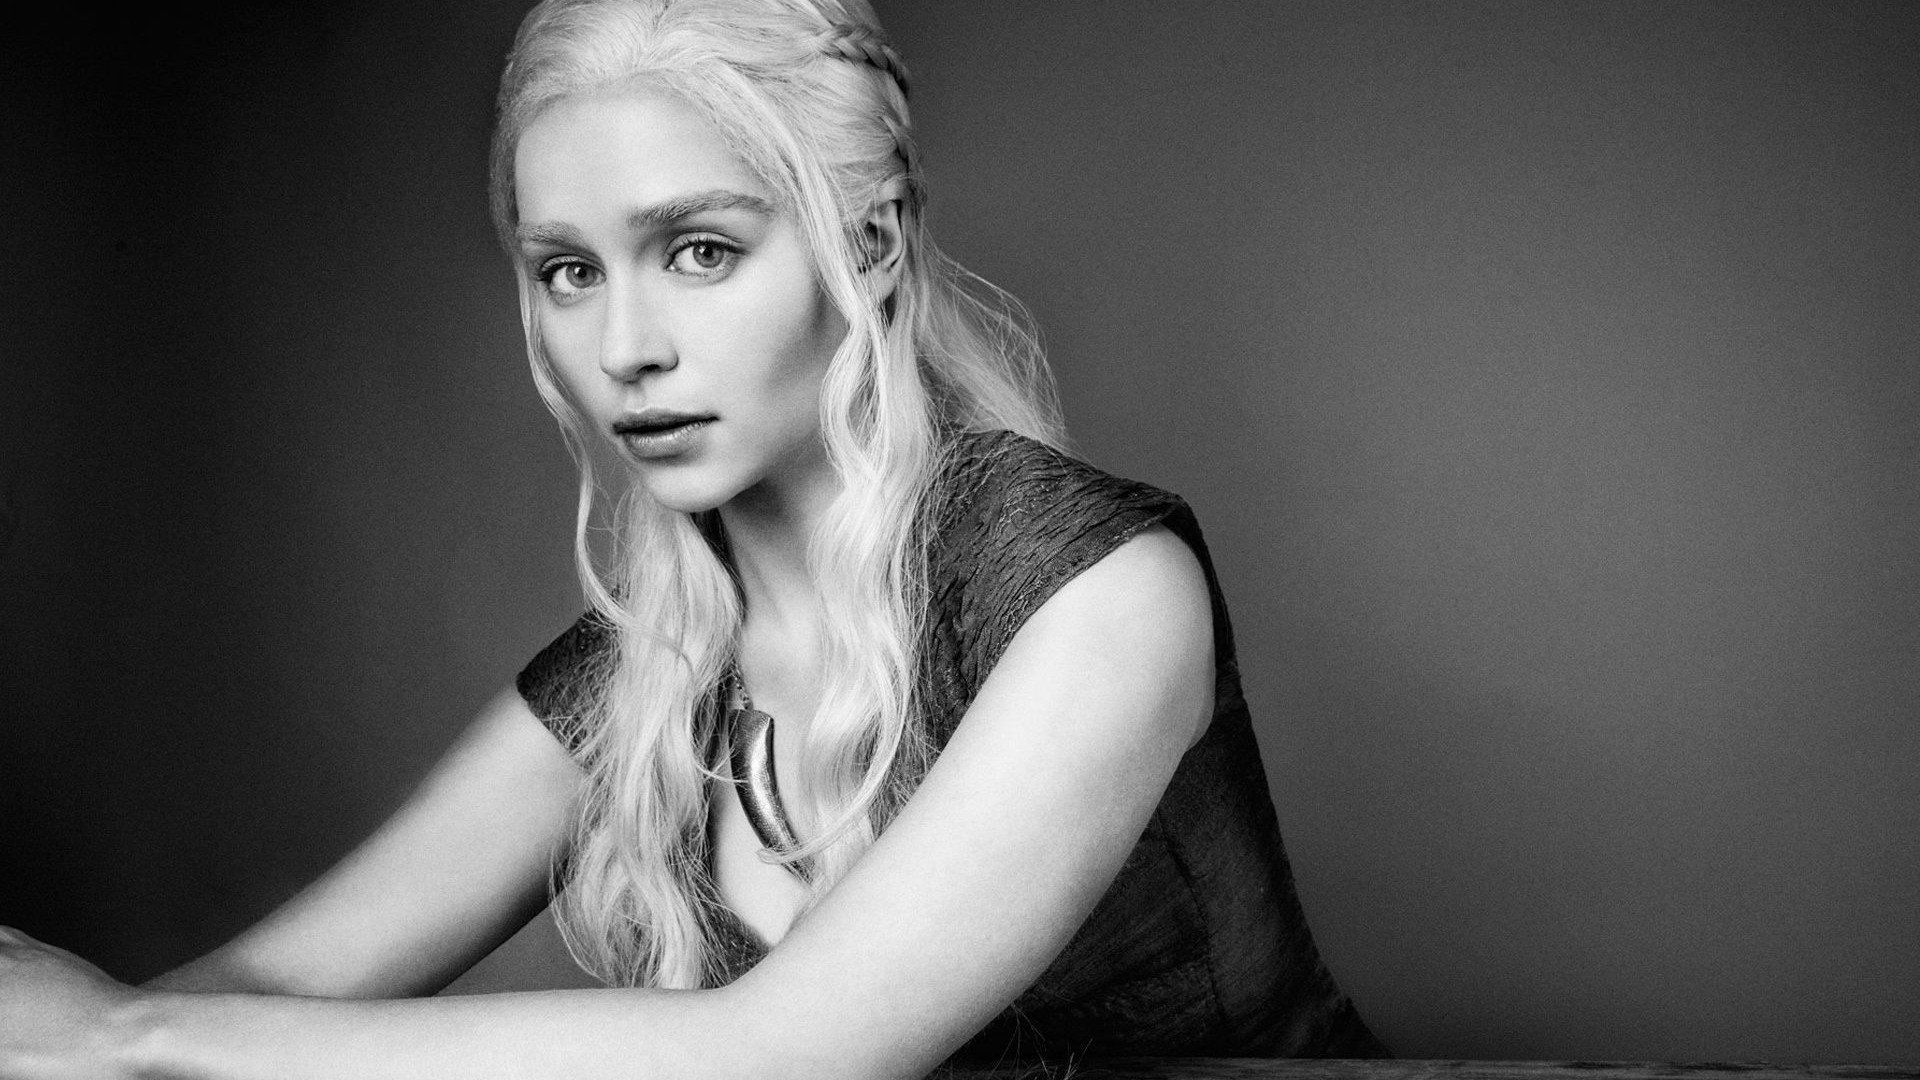 Emilia Clarke Game Of Thrones Wallpaper: Emilia Clarke, Monochrome, Game Of Thrones, Daenerys